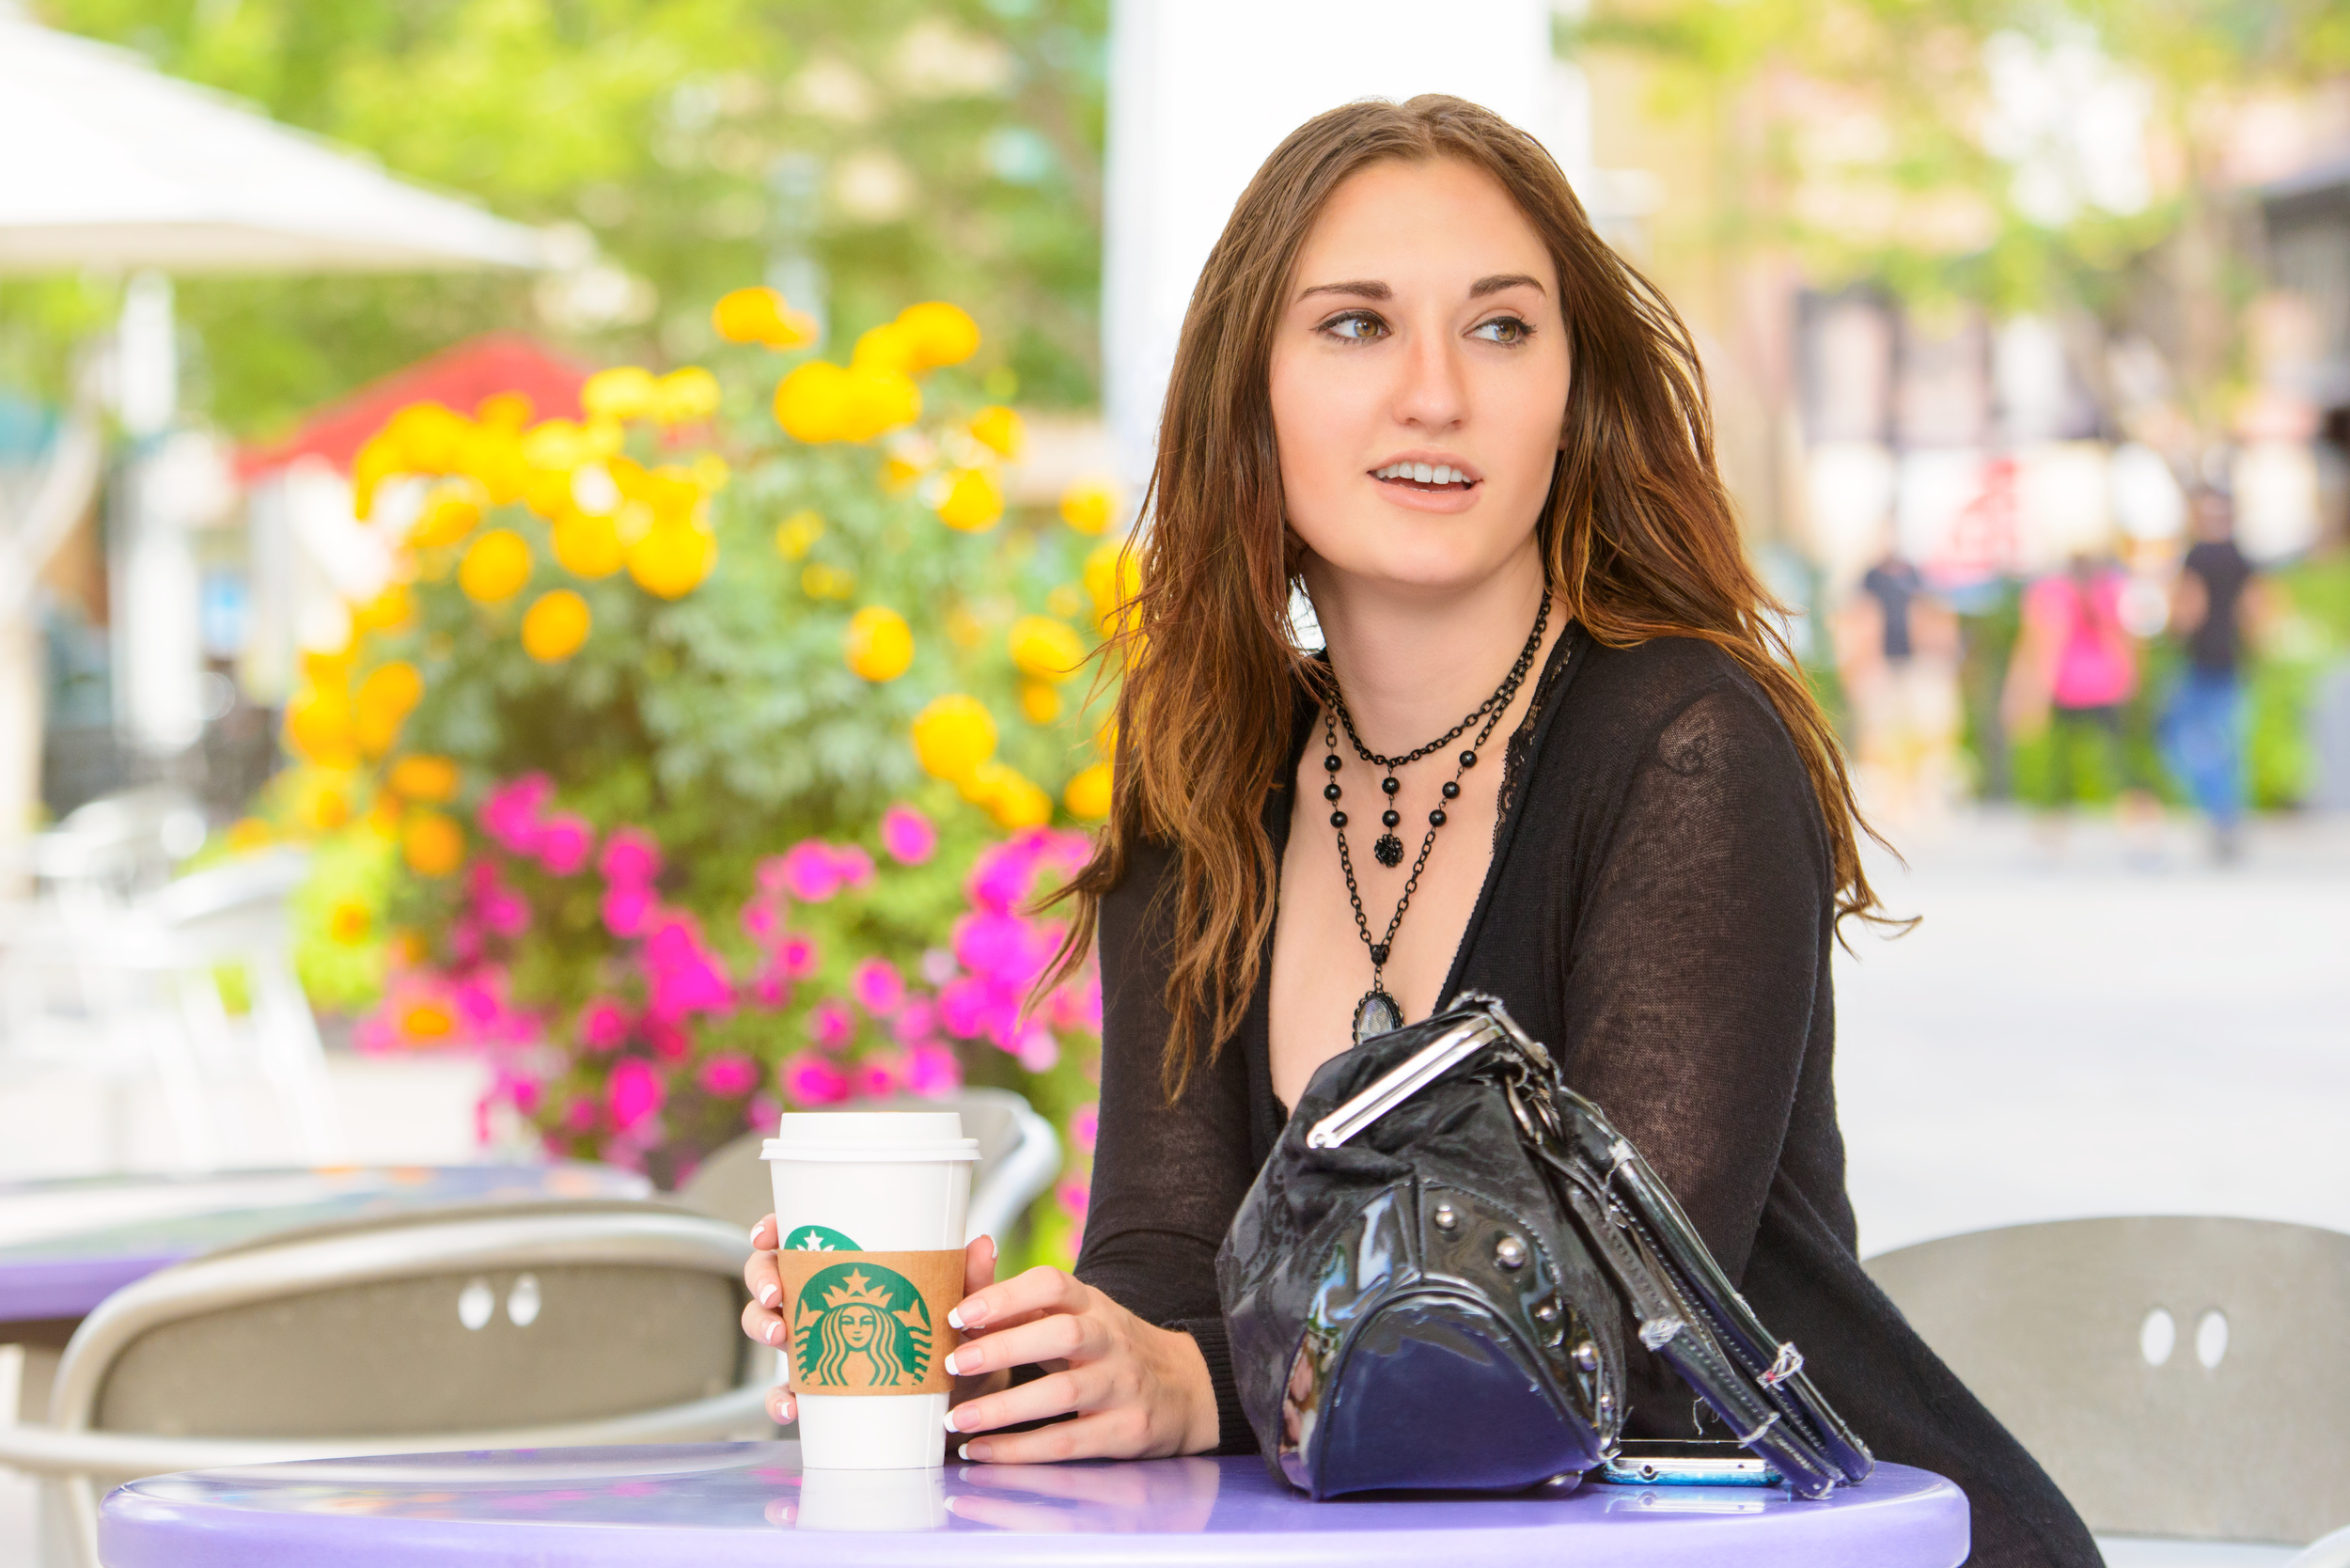 Adverting lifestlye image of a young woman with Starbucks on plaza patio